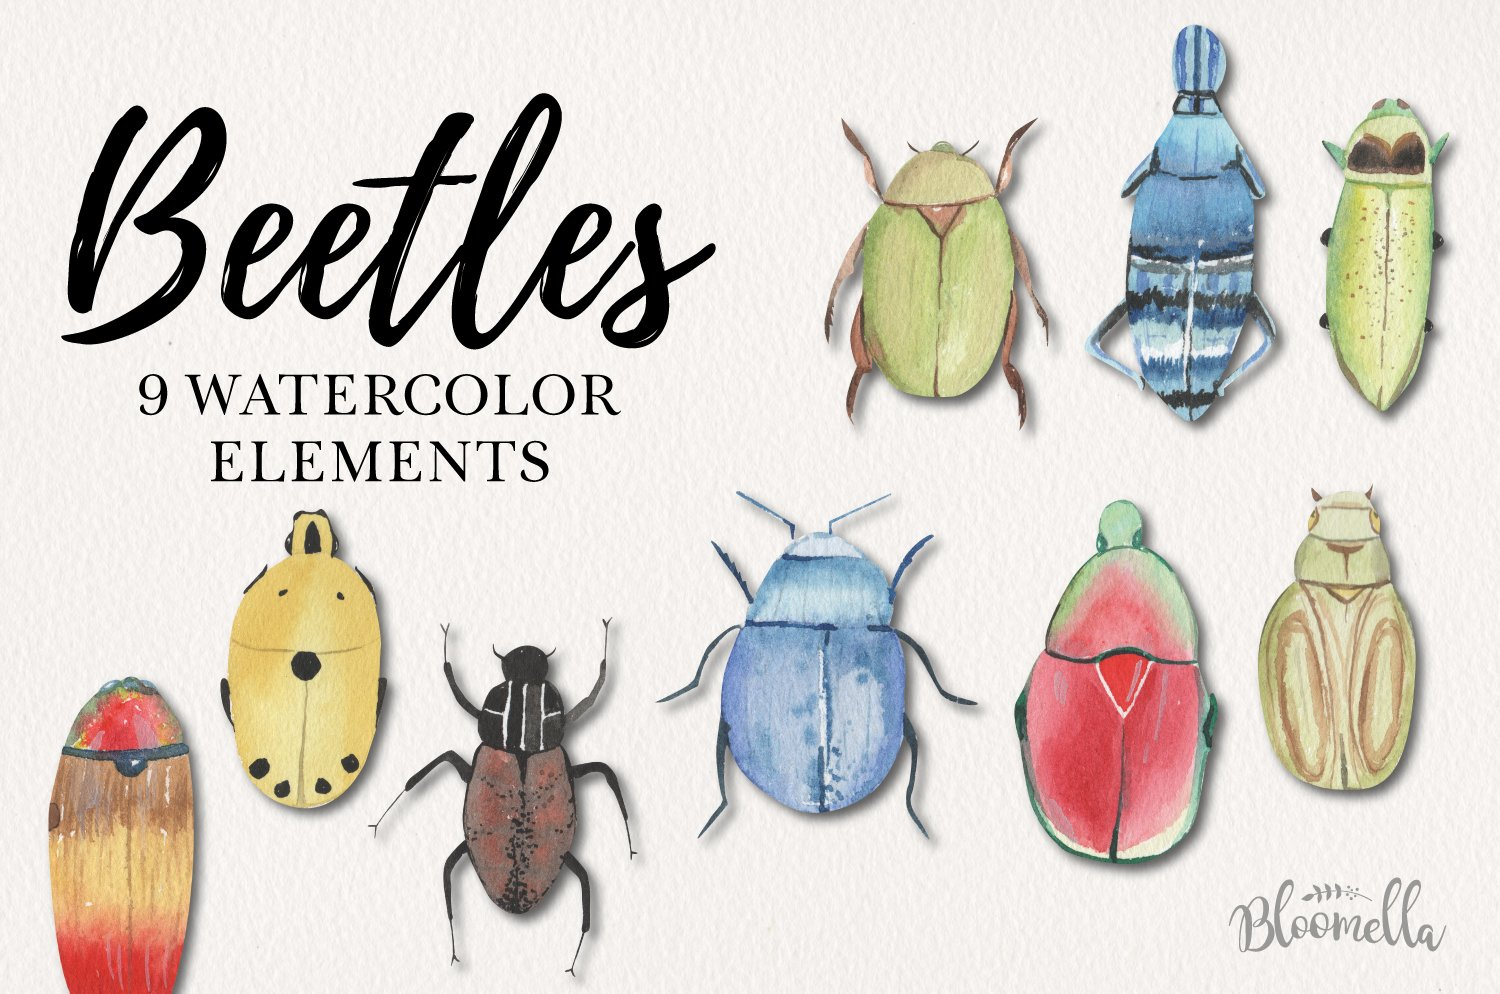 Fun Beetle Watercolor Elements Bug Icons Pretty example image 1